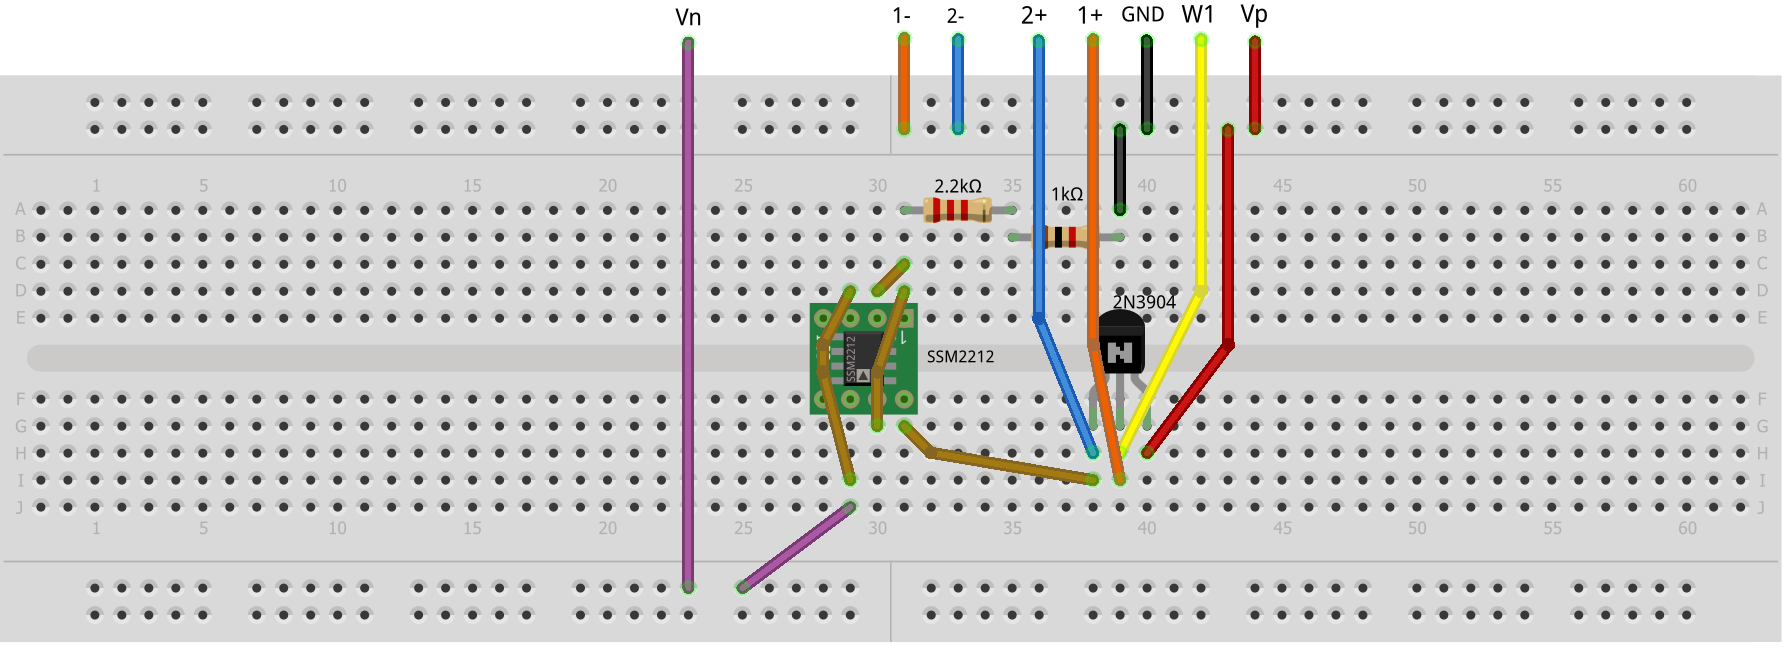 Activity 11 The Emitter Follower Bjt Analog Devices Wiki Common Amplifier Design A Simple Approach To Determining Hardware Setup Figure 5 Improved Breadboard Circuit